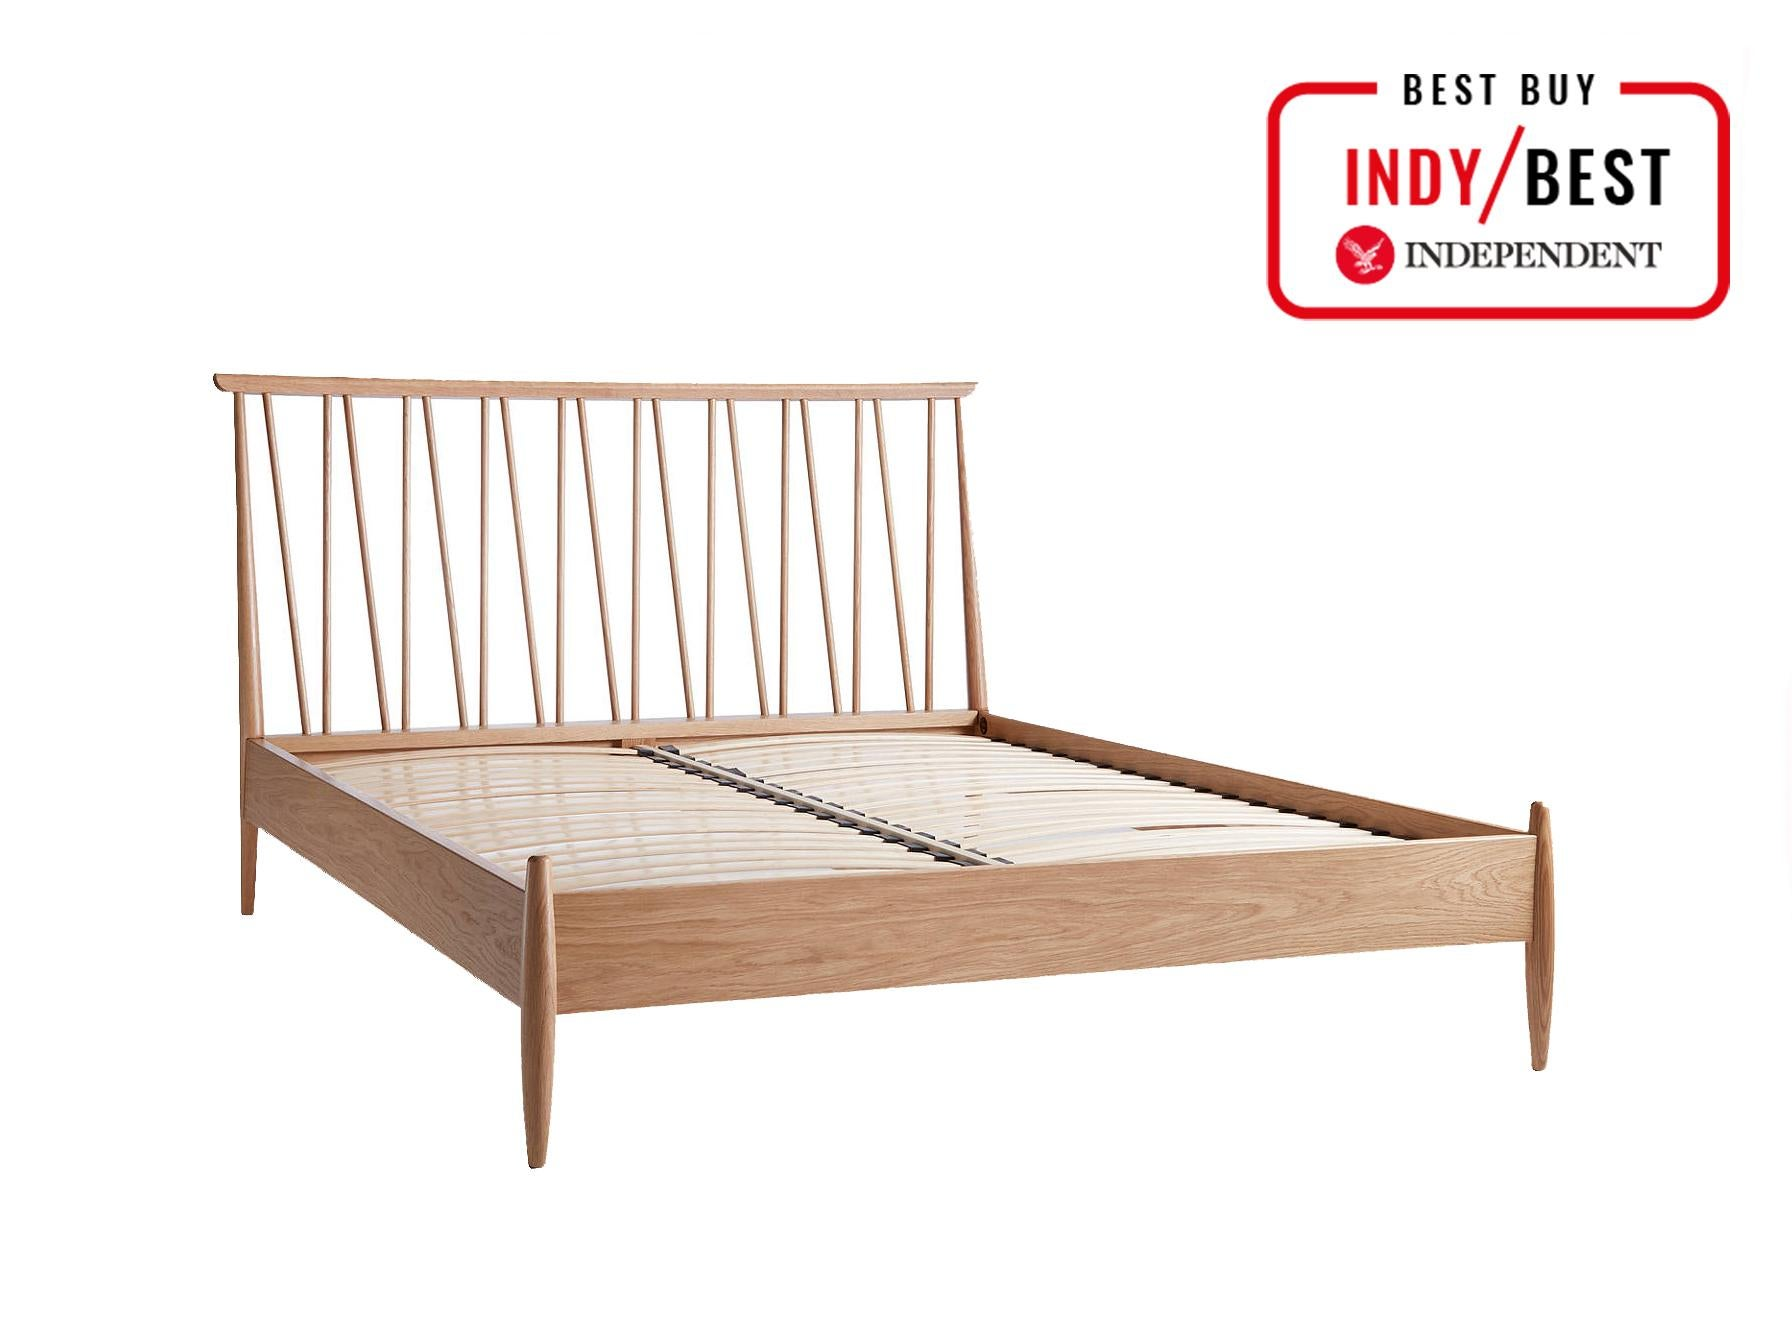 new arrival 469f1 5133d 10 best double beds | The Independent